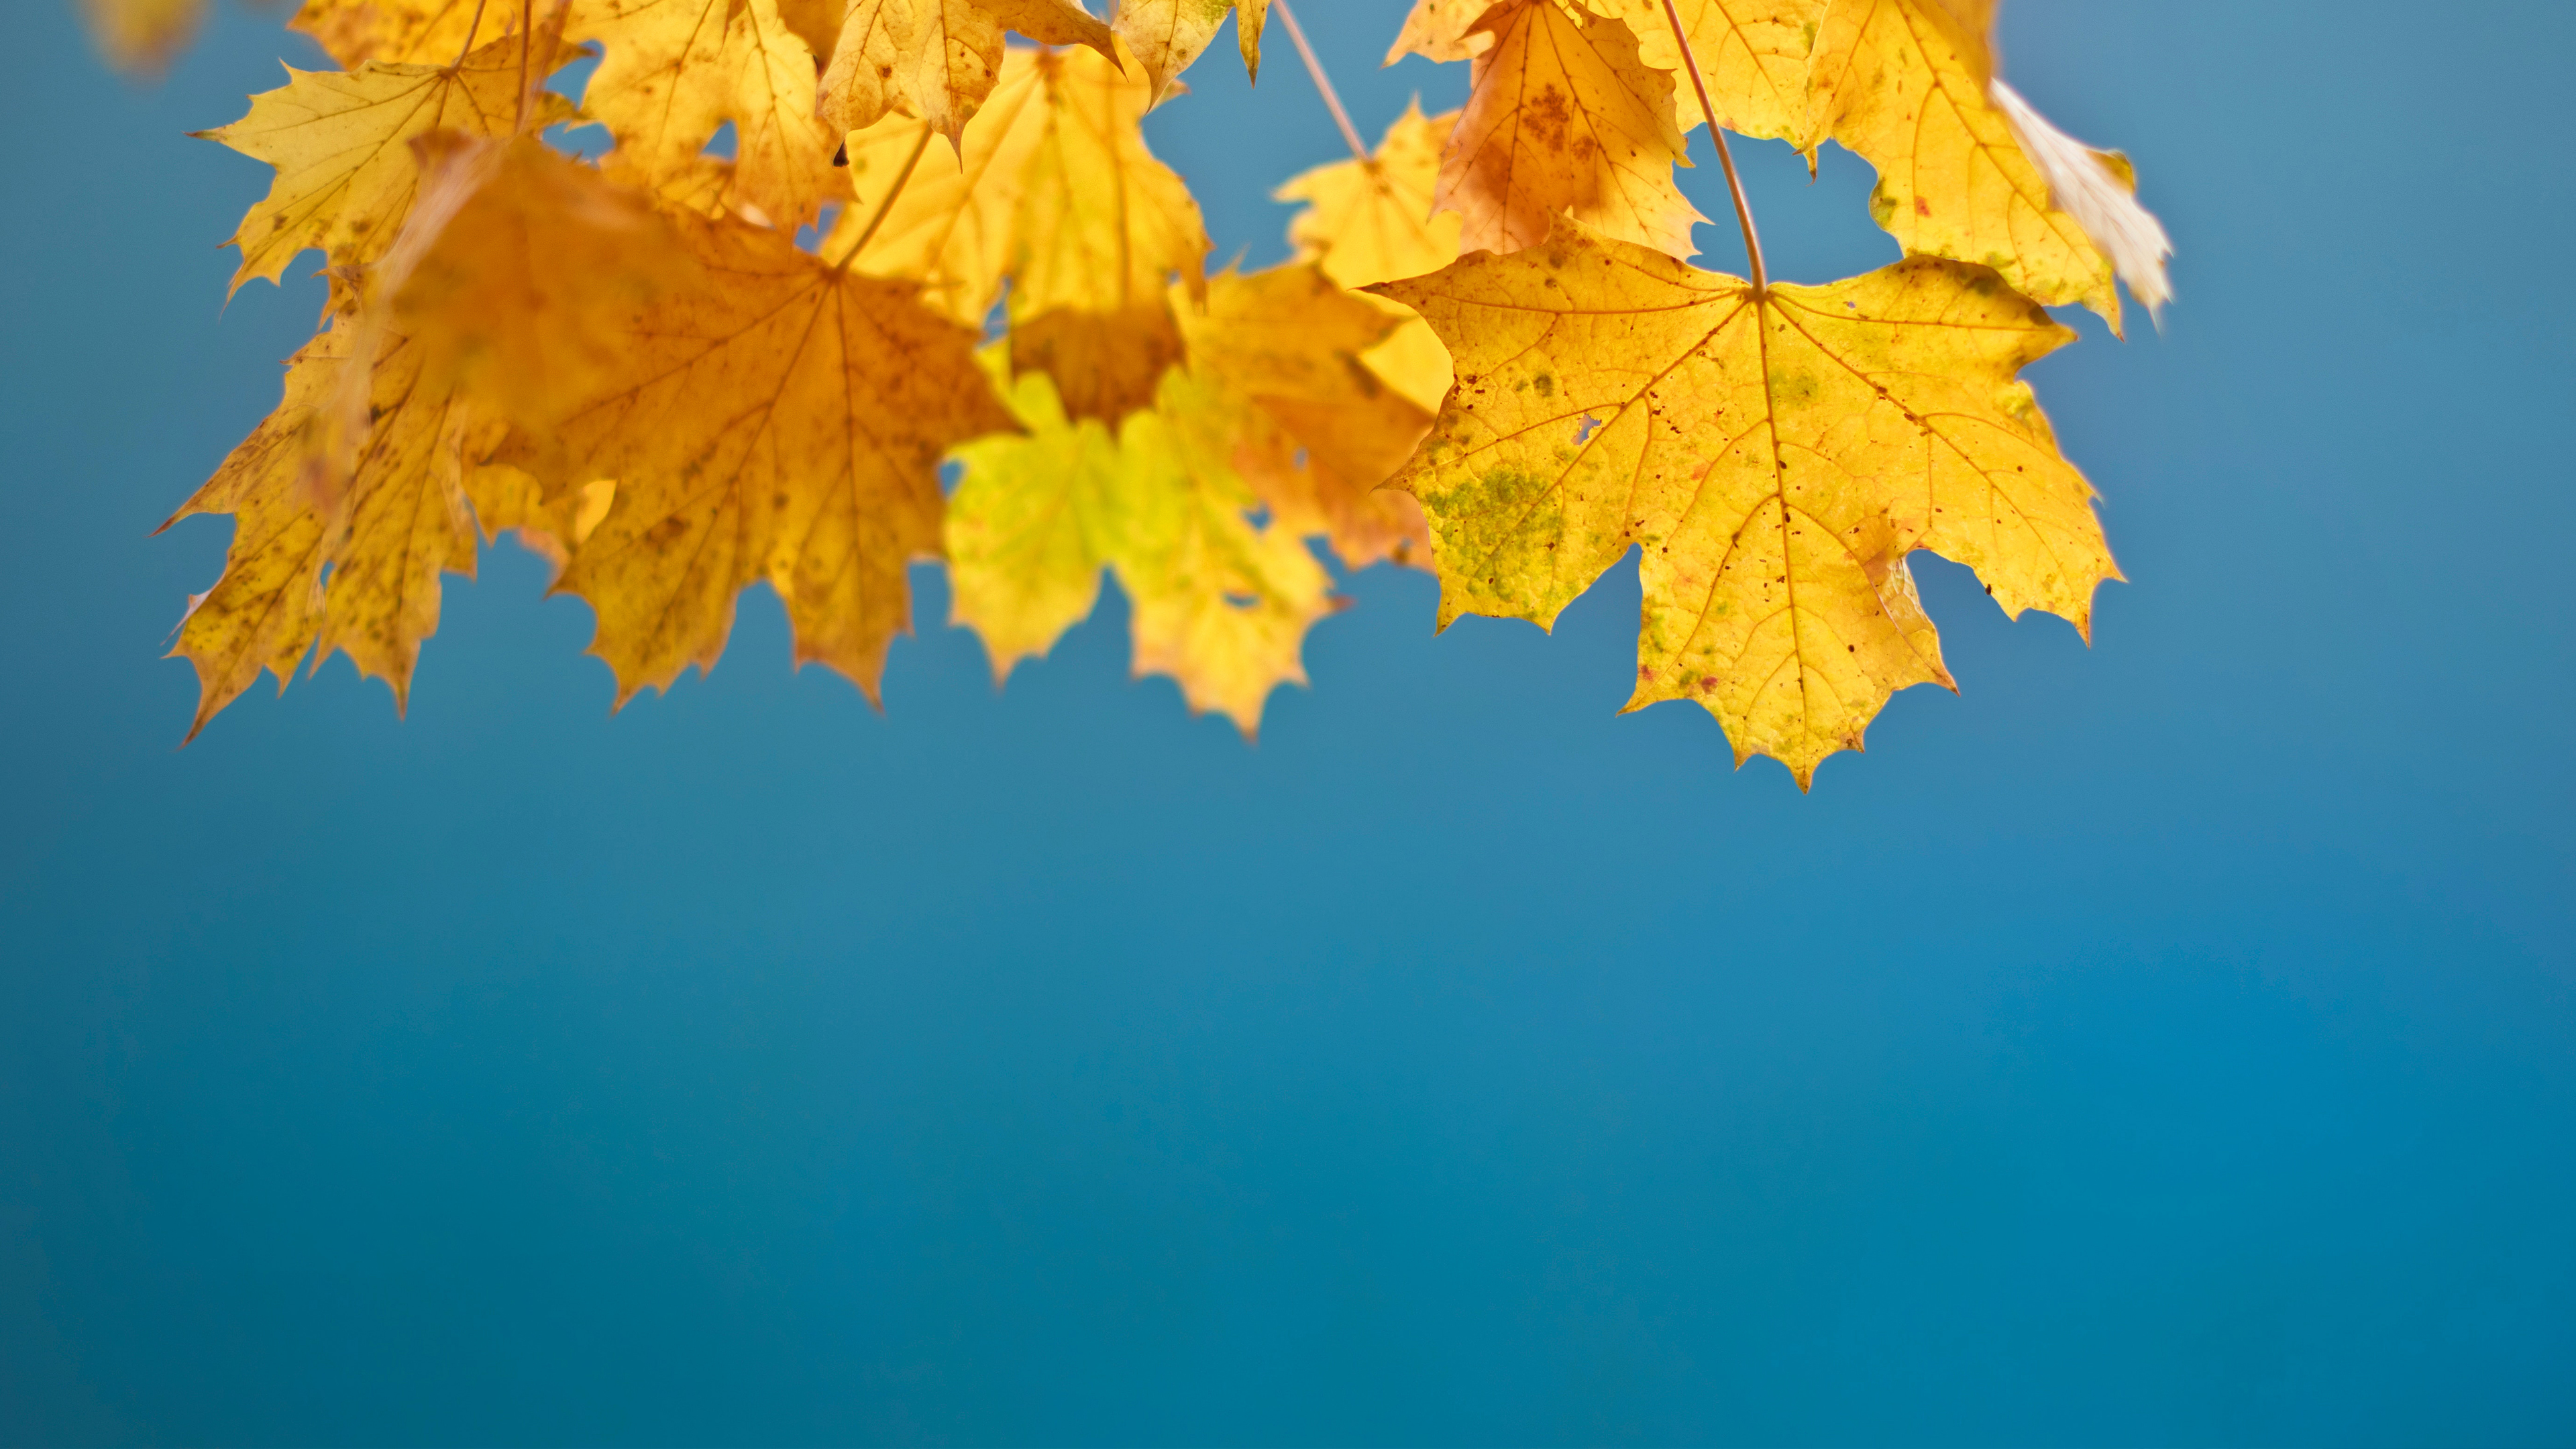 Autumn Leaves 4K Wallpapers